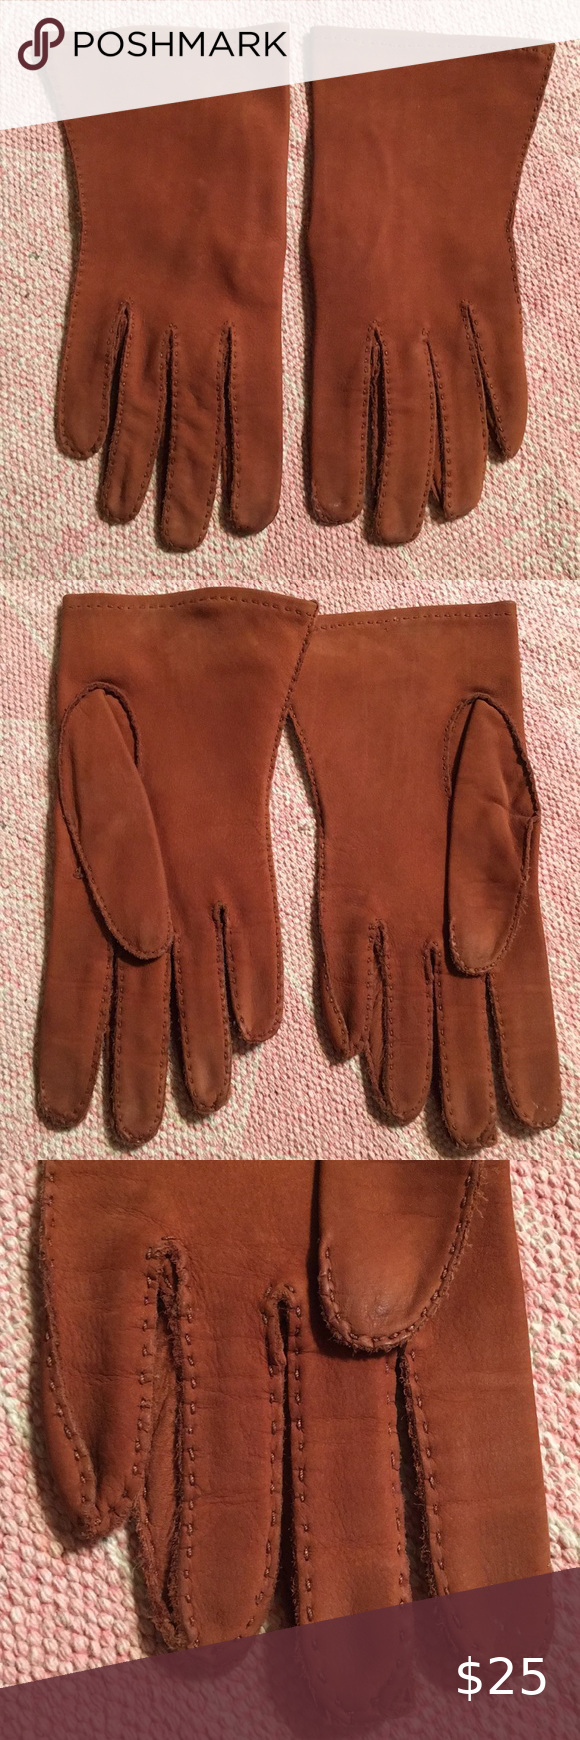 Chanel logo mutton suede leather shearling gloves in 2020